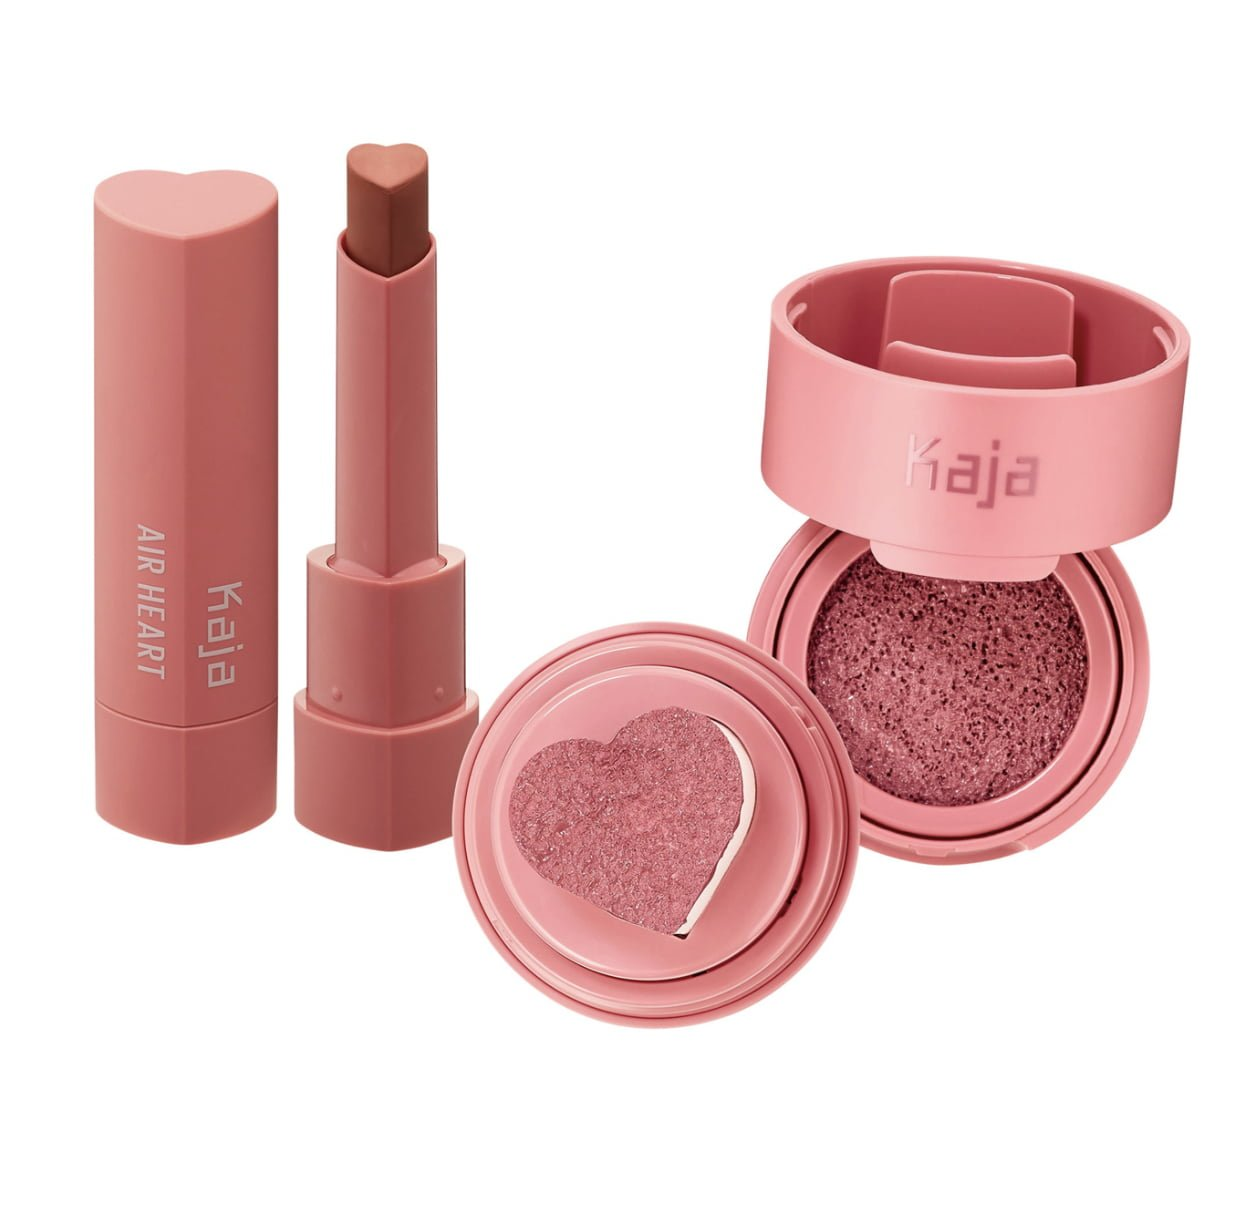 KAJA Air Heart Lipstick and Cheeky Stamp Blush Set